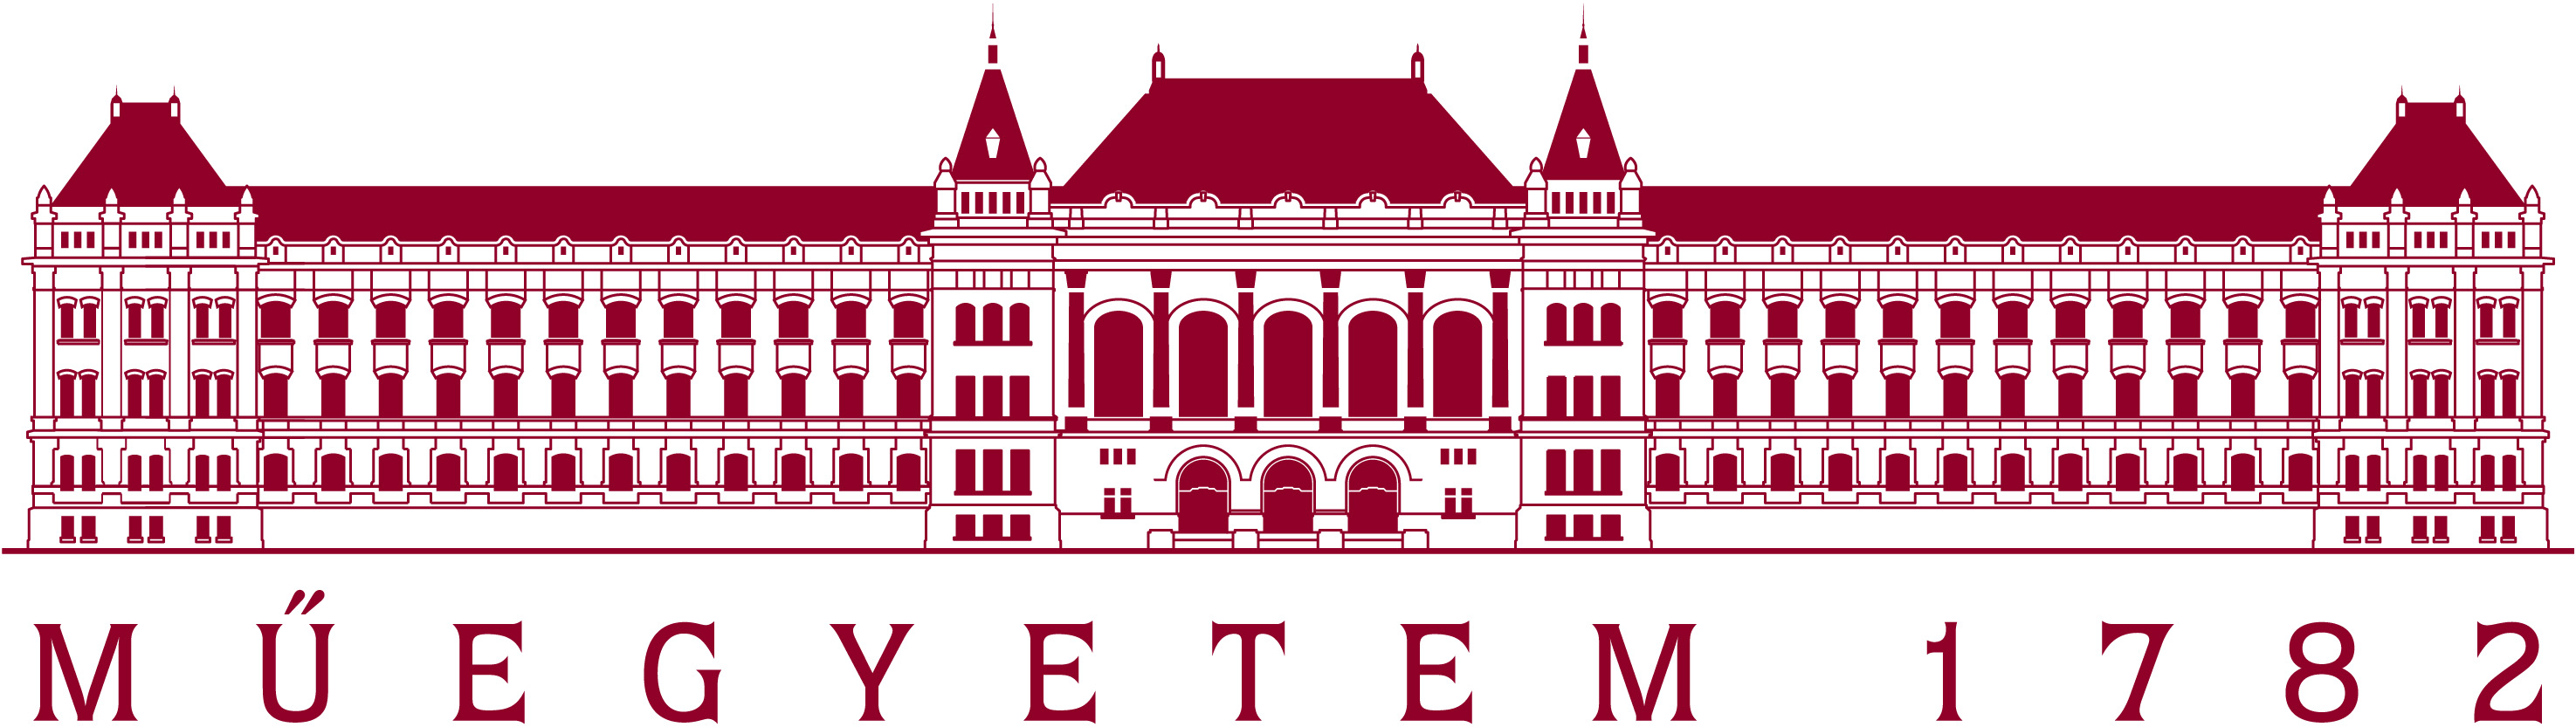 BME Logo - drawing of a university building with the founding date 1782